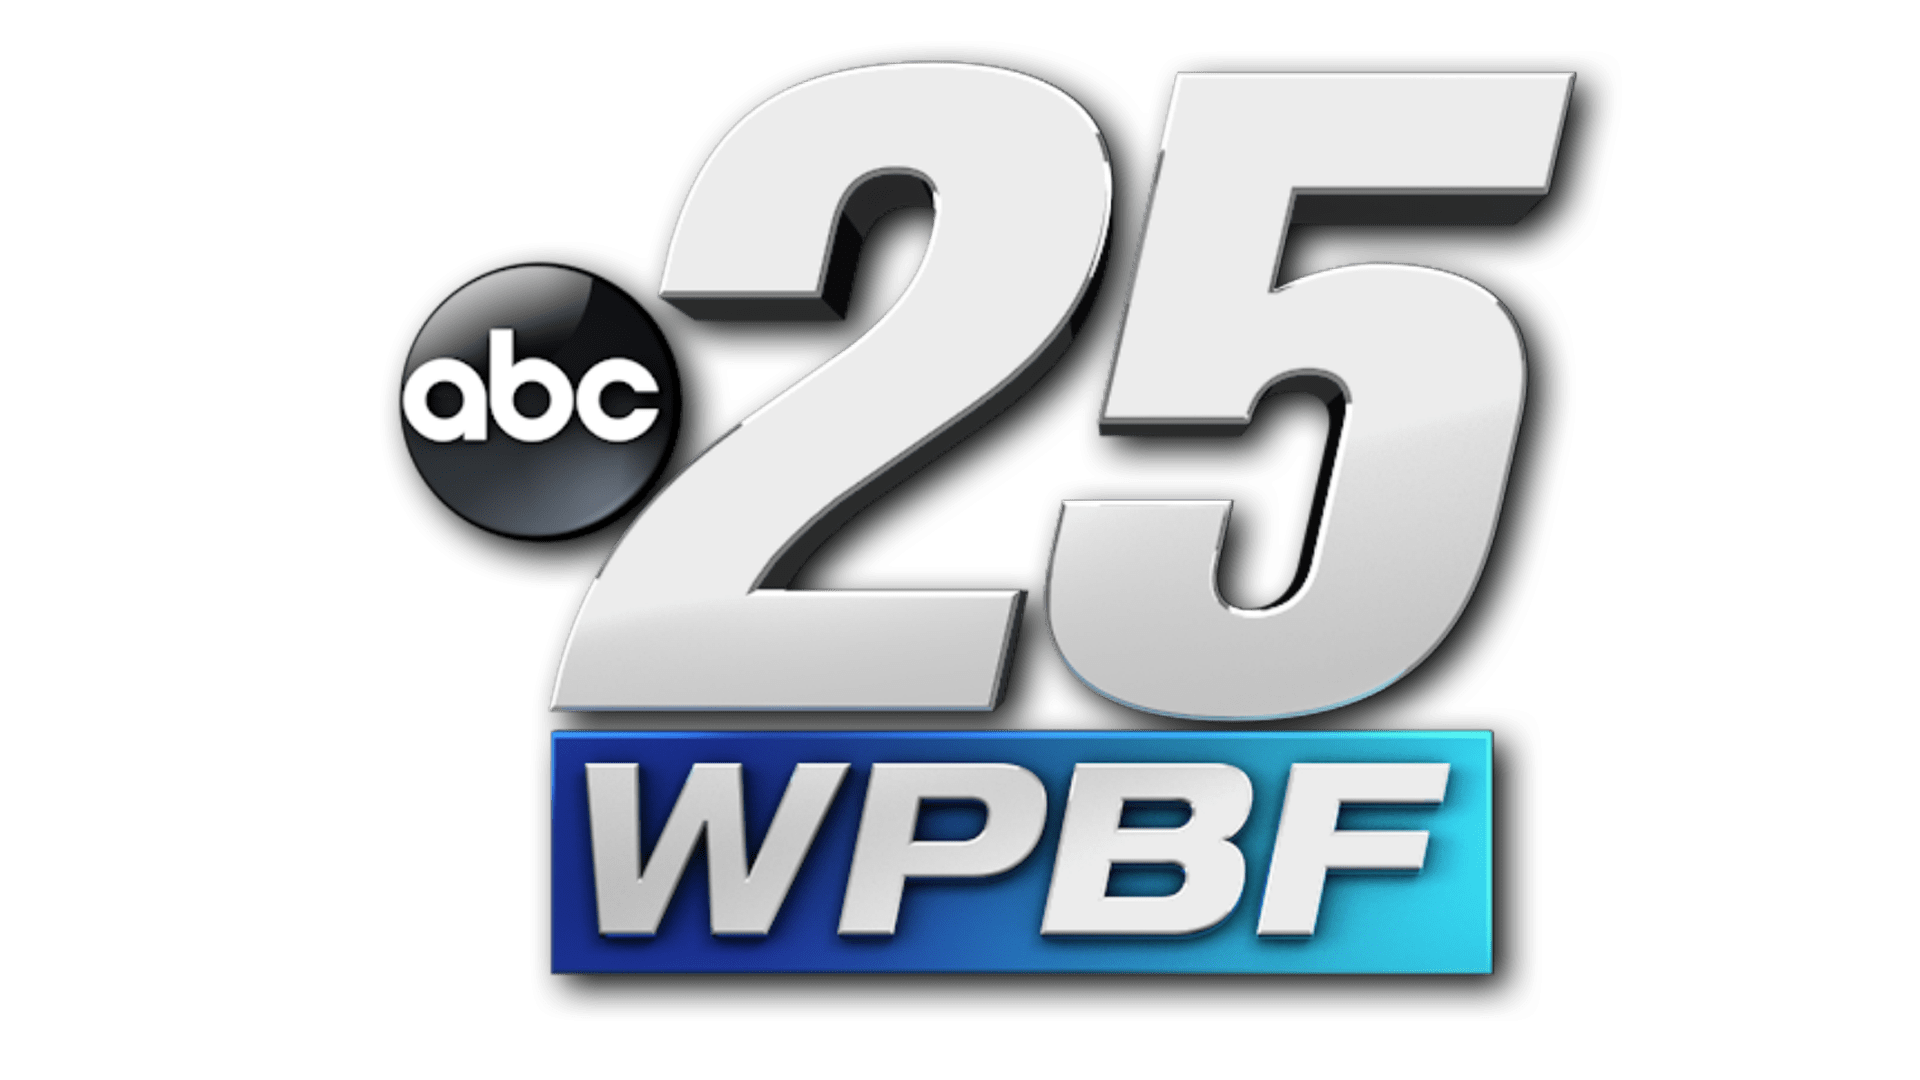 Venture Construction Group of Florida Hurricane Michael Emergency Relief Services Featured On WPBF 25 News